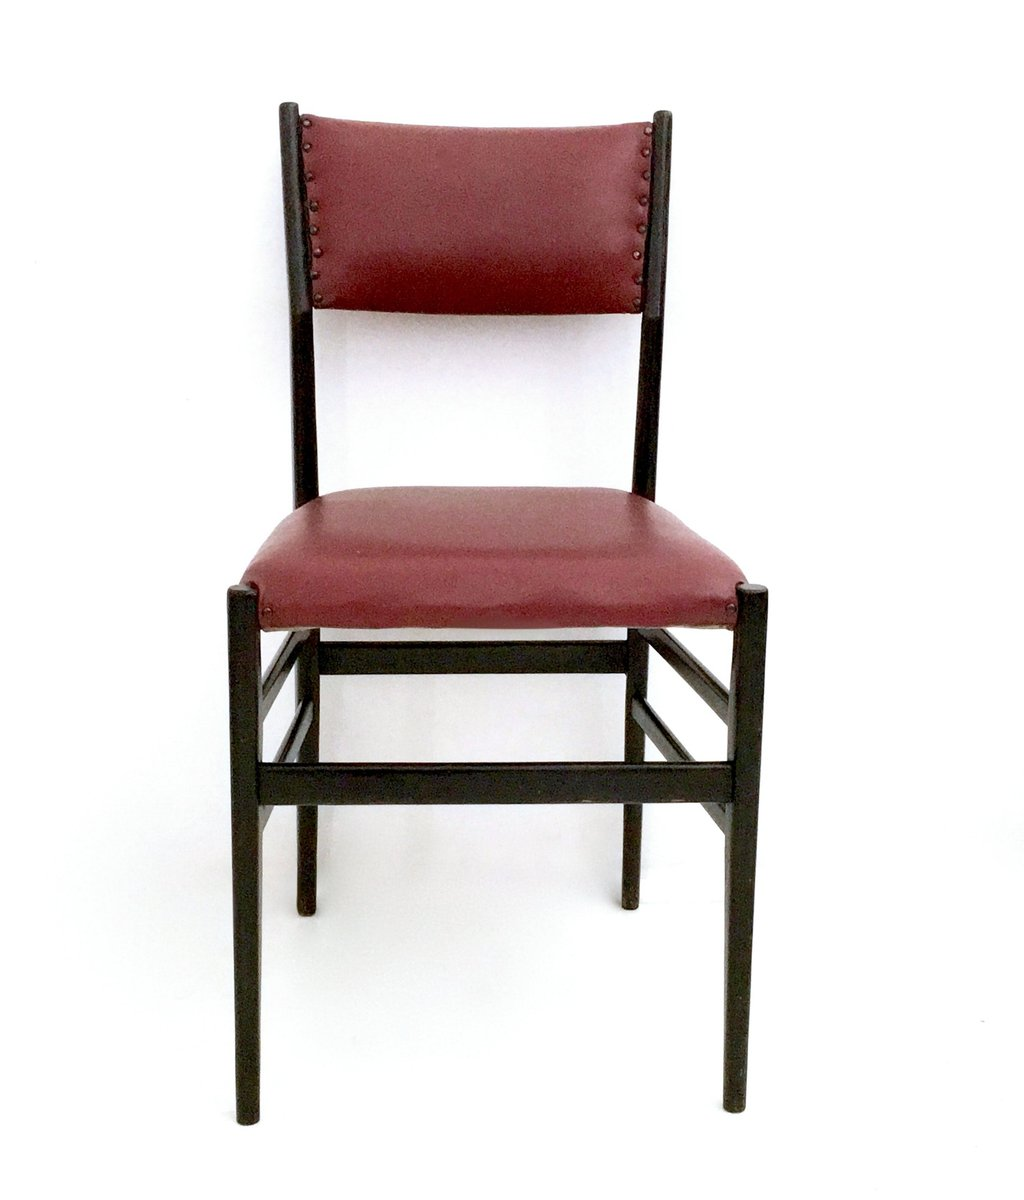 Bon Burgundy Leggera Chairs By Gio Ponti For Cassina, 1950s, Set Of 6